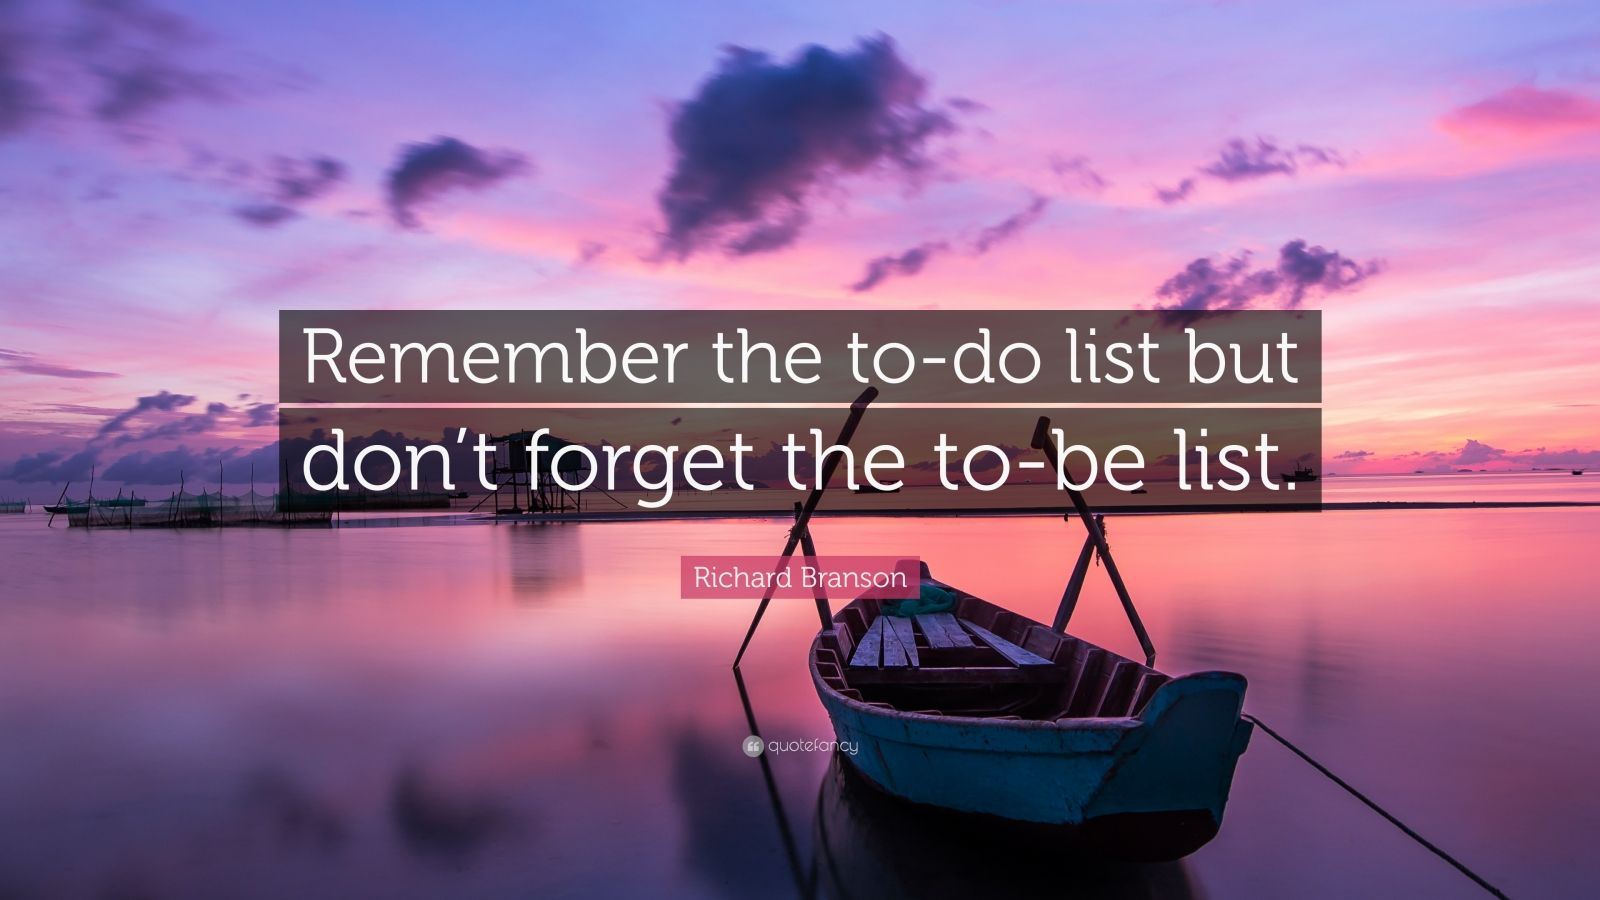 """Richard Branson Quote: """"Remember the to-do list but don't forget the to-be list."""""""